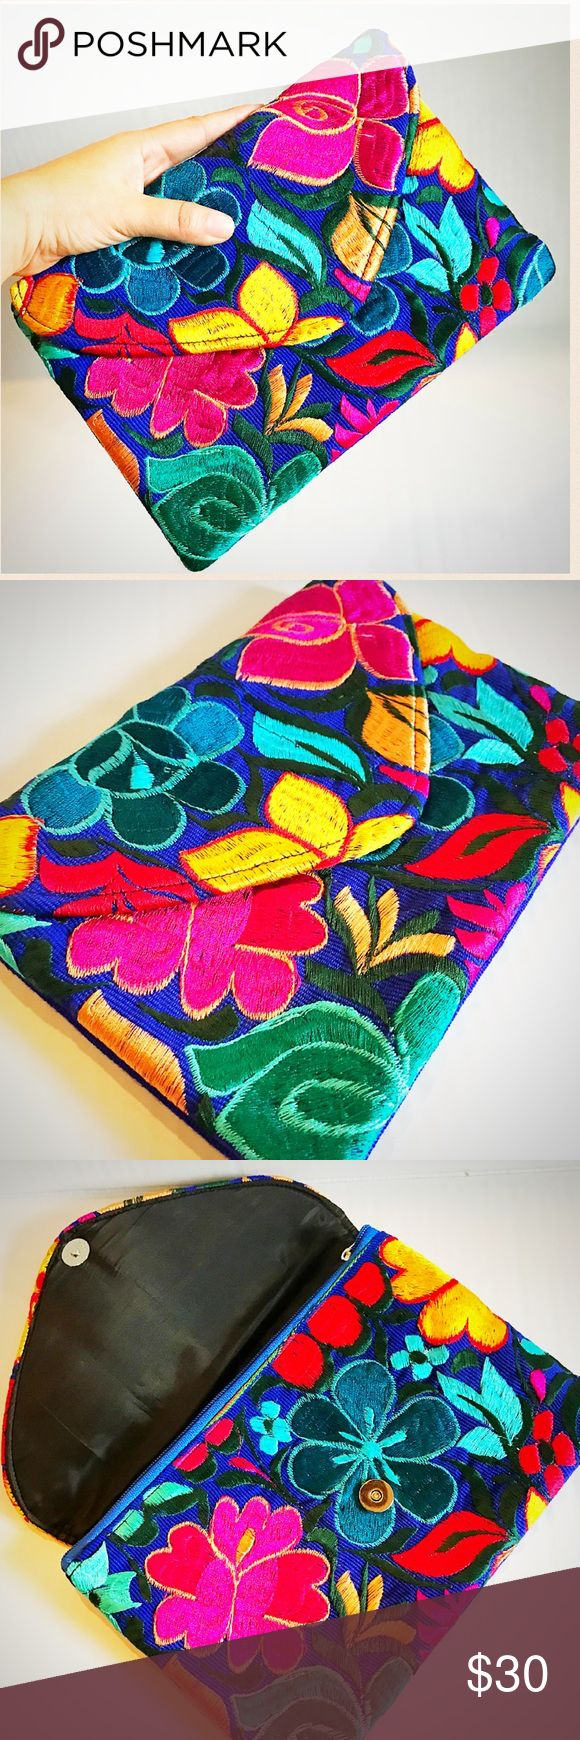 ❤️New Clutch Bag Envelope Handmade Embroidered Beautiful unique One-of-a-Kind design exclusively made for Cielito Lindo Mexican Boutique! You won't find it anywhere else! Snap and zippered closure. Royal blue with colorful floral embroidery made with silk thread using very vibrant colors! Envelope style! Cielito Lindo  Bags Clutches & Wristlets